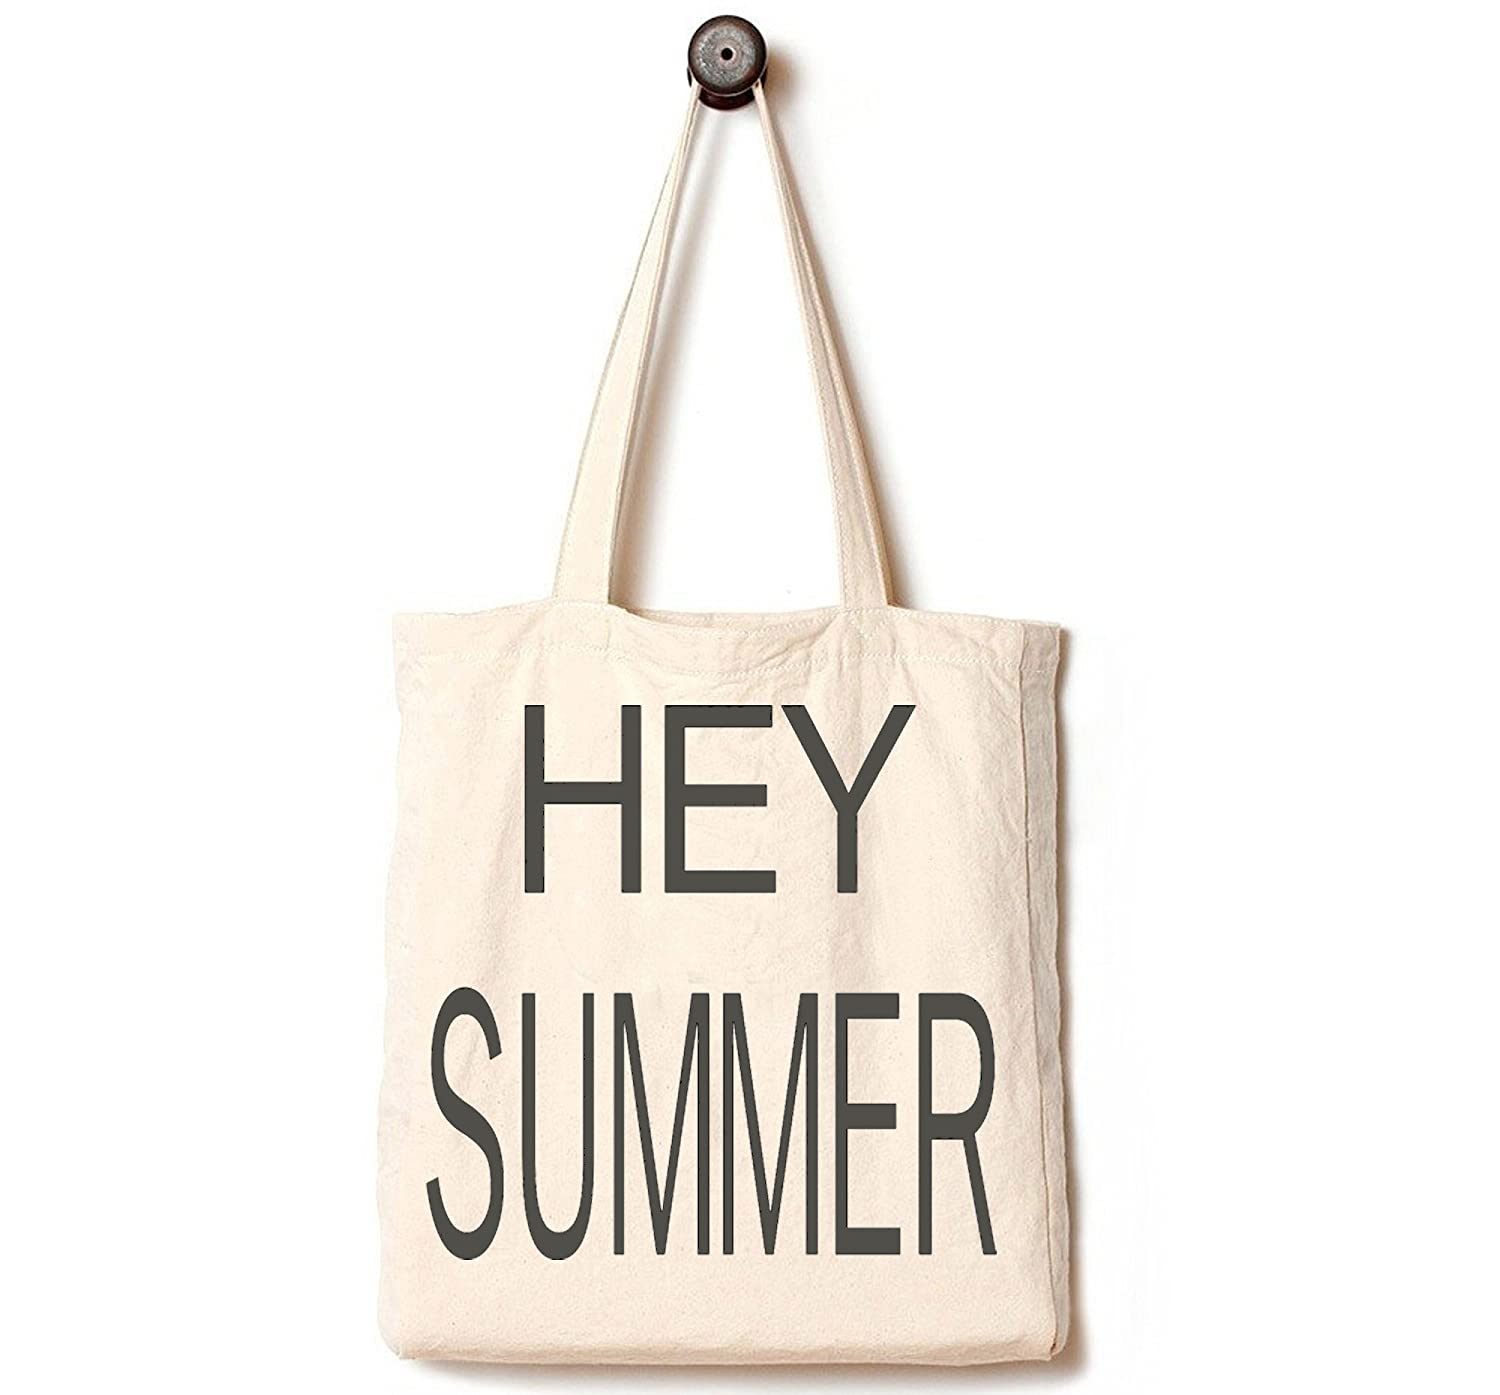 Andes Heavy Duty Canvas Square Bottom Tote Bag, Handmade from Organic 12 Ounce Cotton, Best for Shopping, Laptop, School books, Library, Machine Washable and Reusable, Hey Summer by Andes B0107C5E6U Hello Summer Hello Summer